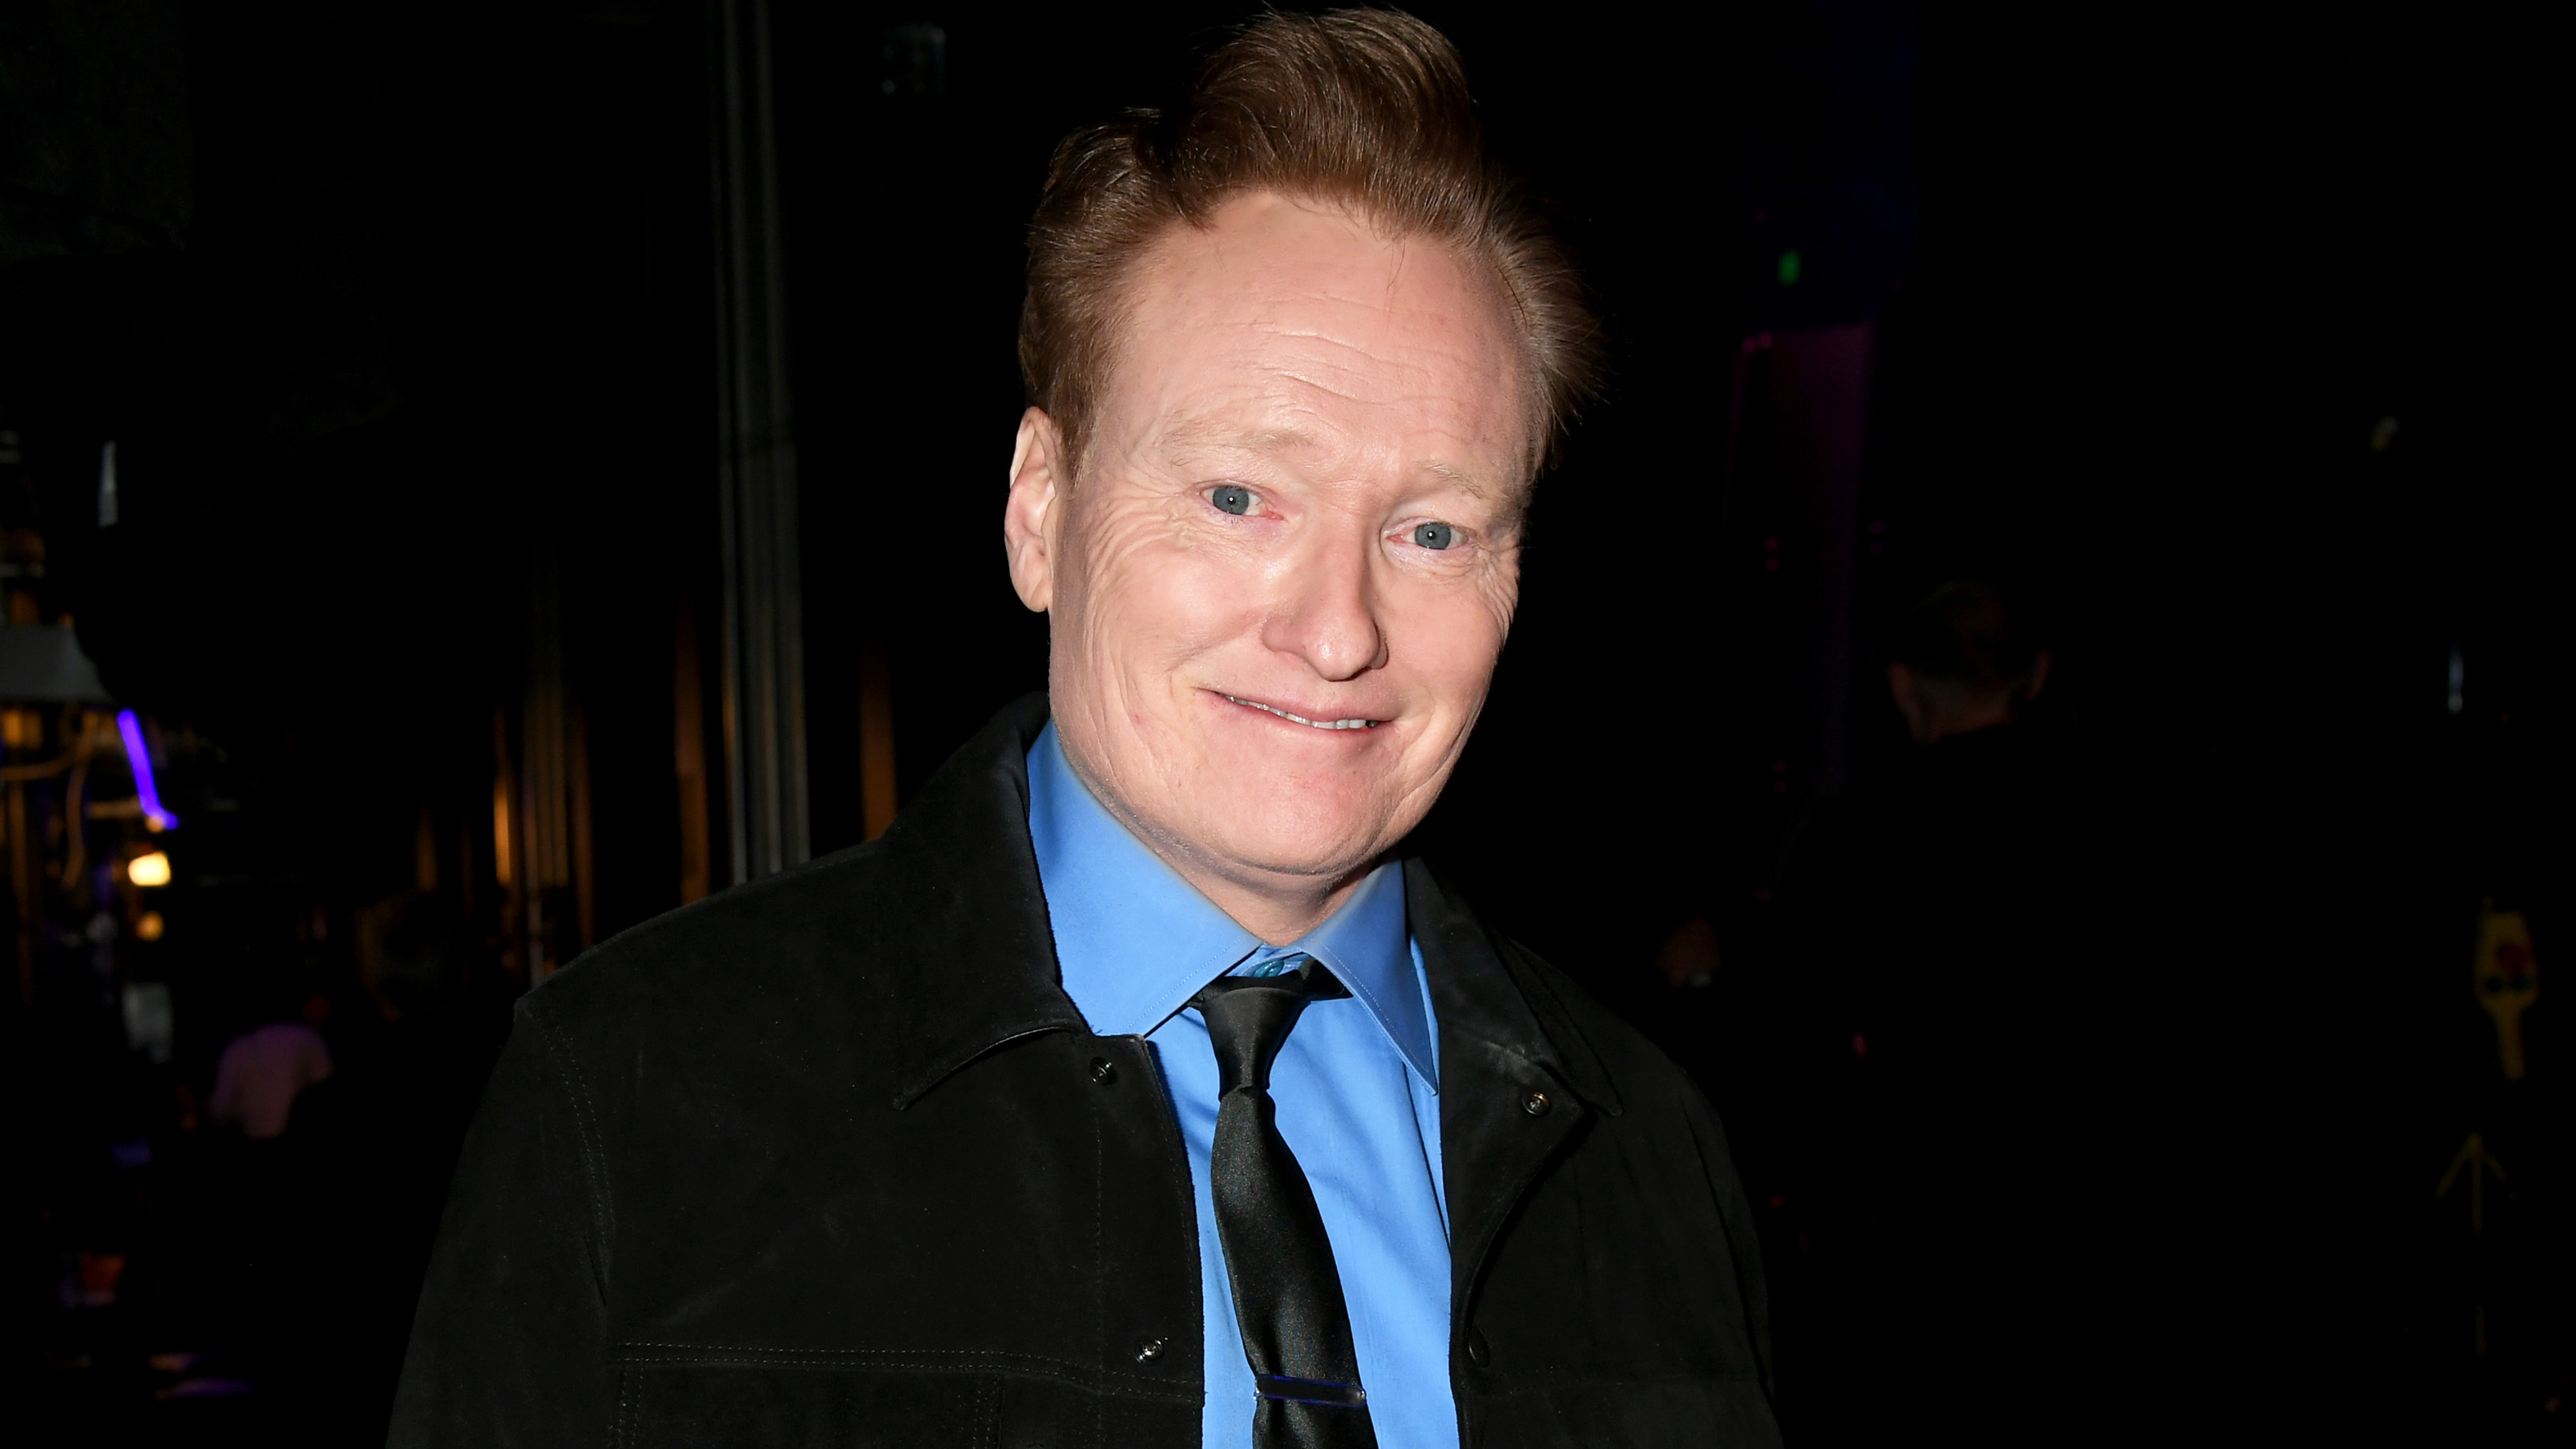 Conan O'Brien announces end date for his TBS talk show promises 'fond look back' at 11 years on the network – Fox News